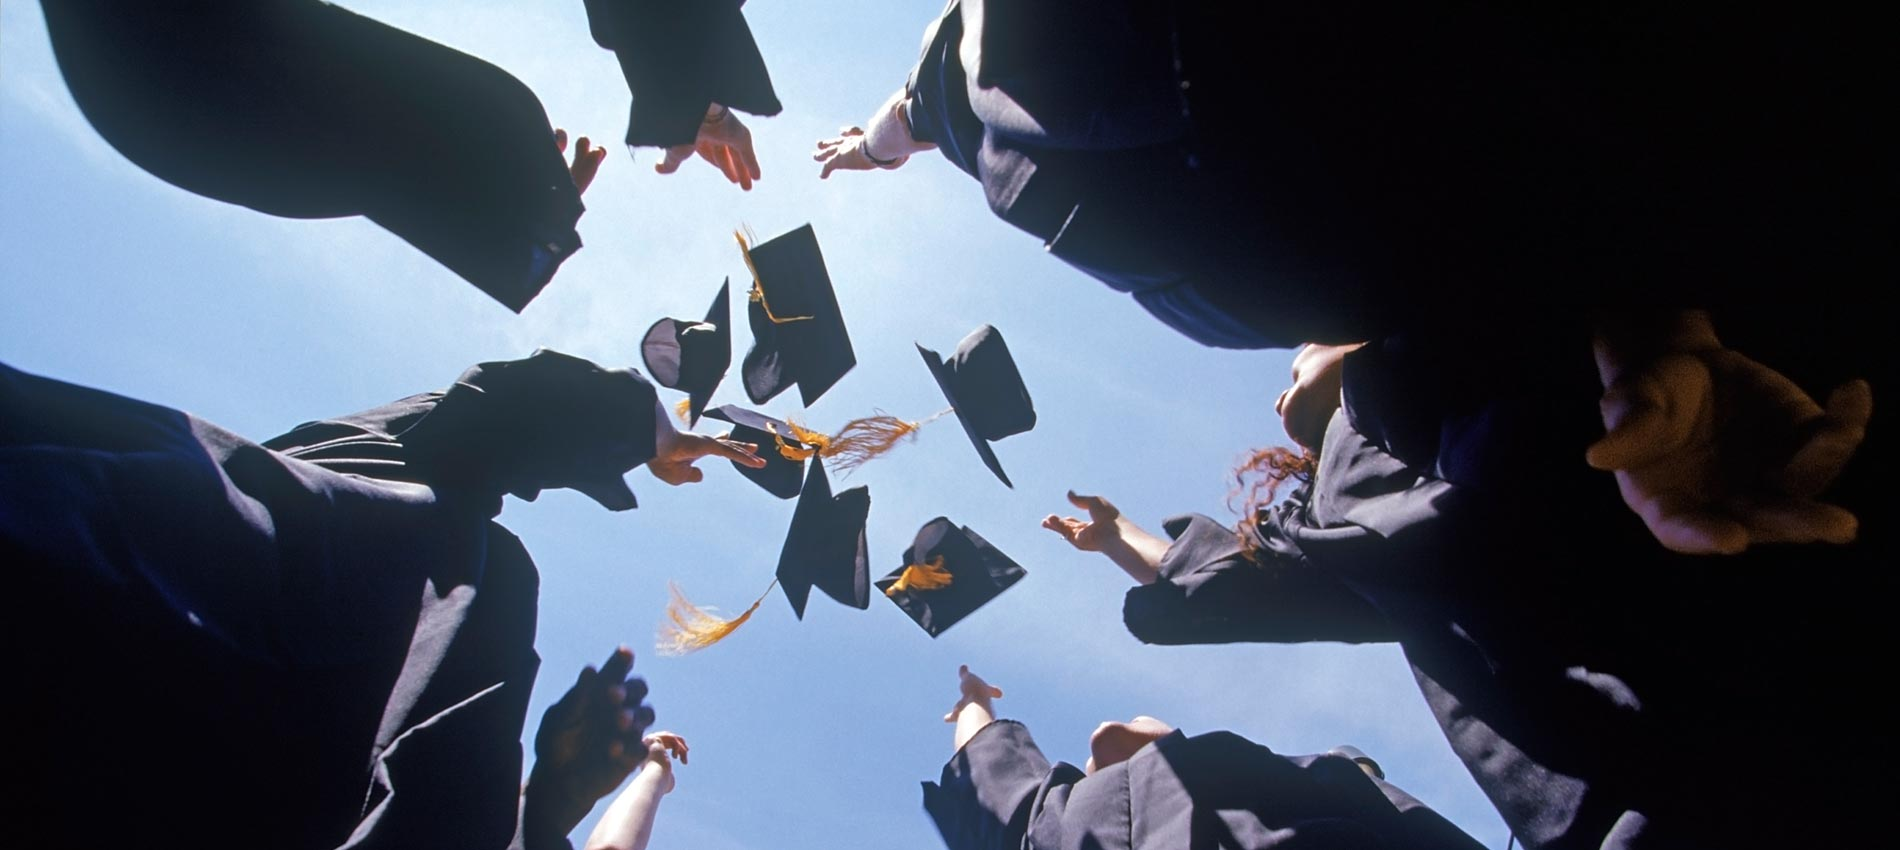 A group of graduates throwing their caps into the air.